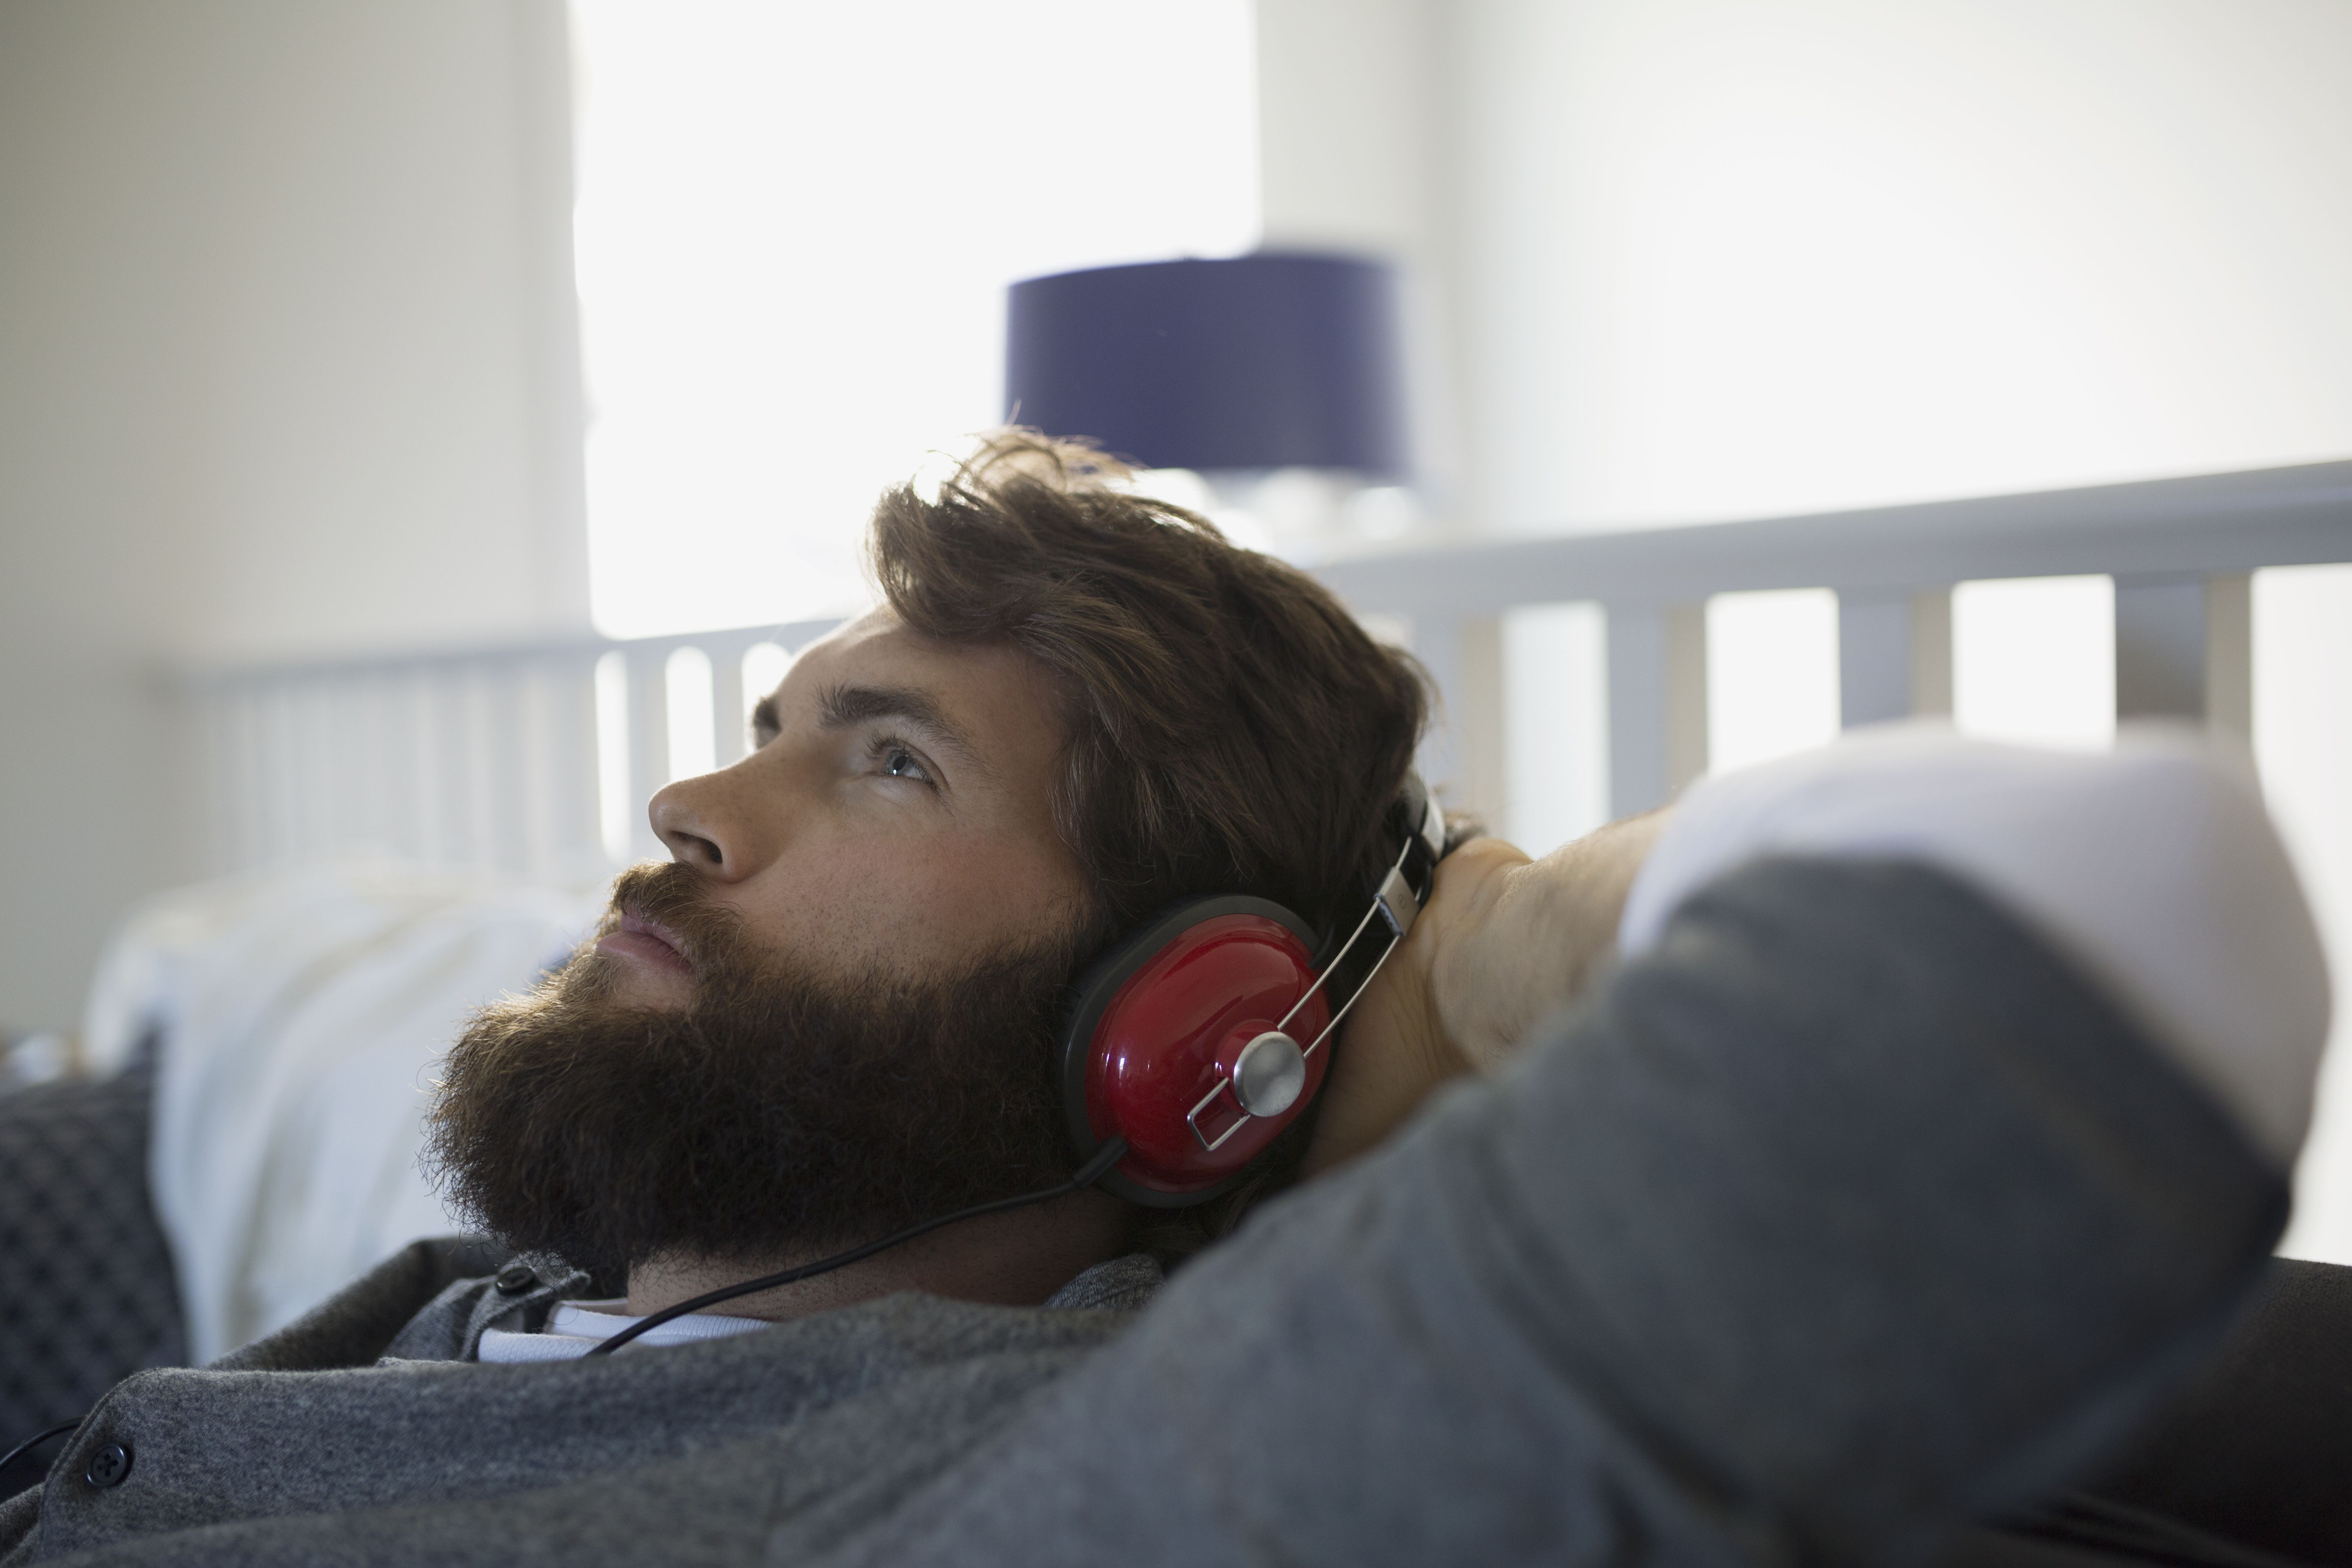 Man with headphones relaxing listening to audiobooks